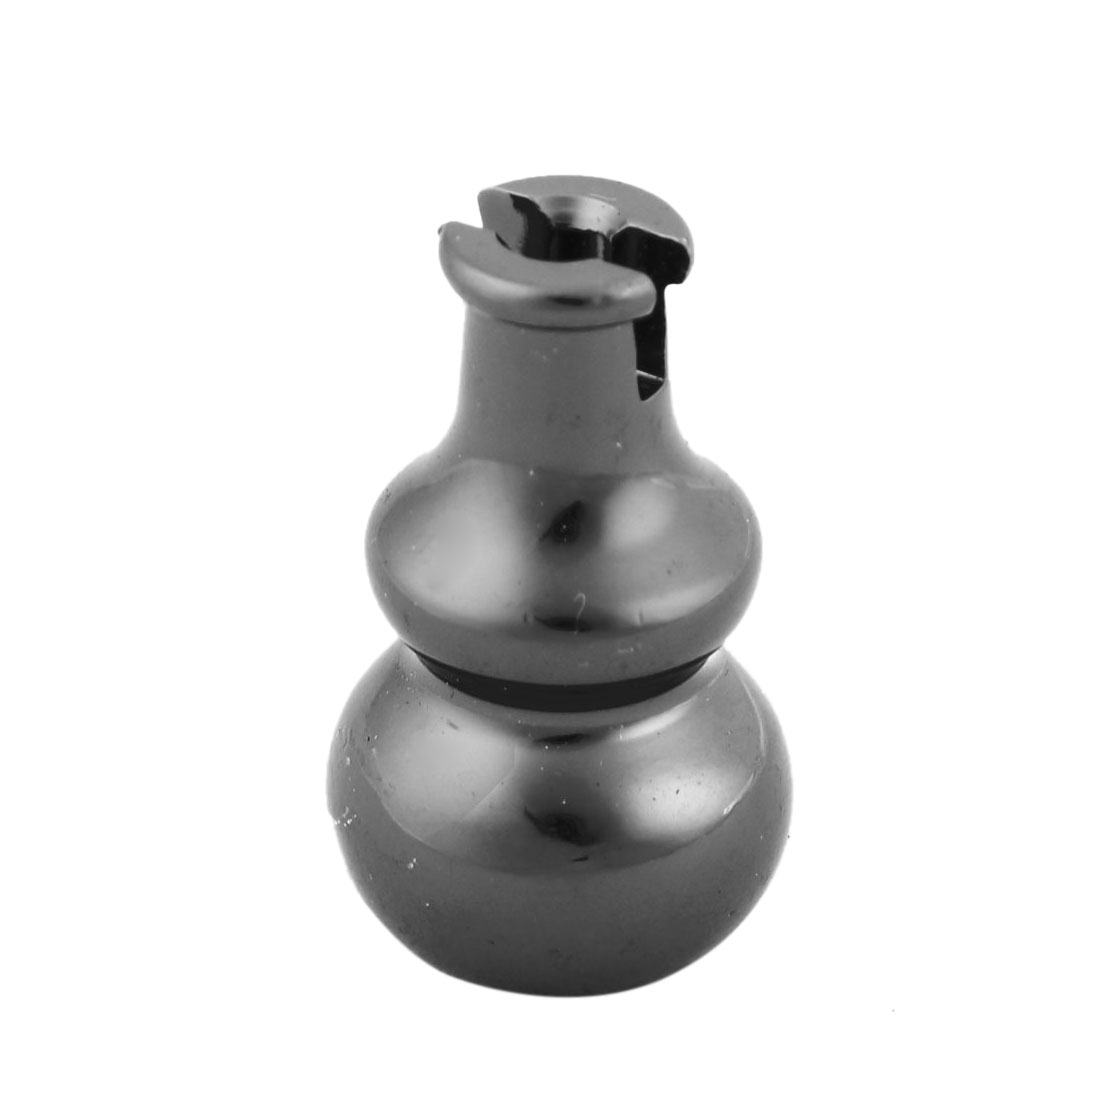 Temple Home Black Metal Gourd Shaped Magnetic Stand Incense Holder Container - image 4 of 4